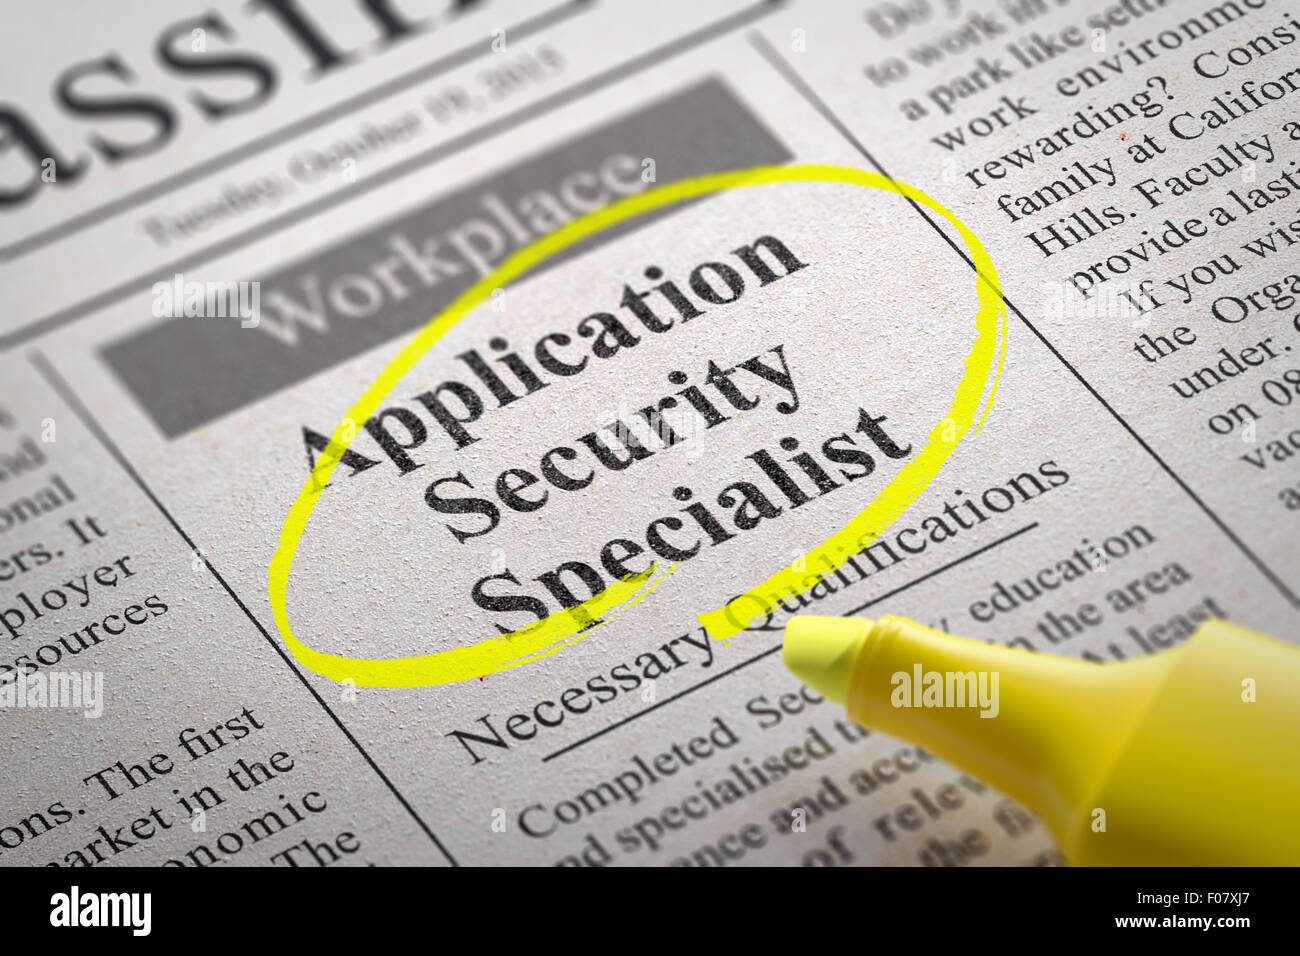 Application Security Specialist Vacancy in Newspaper. - Stock Image